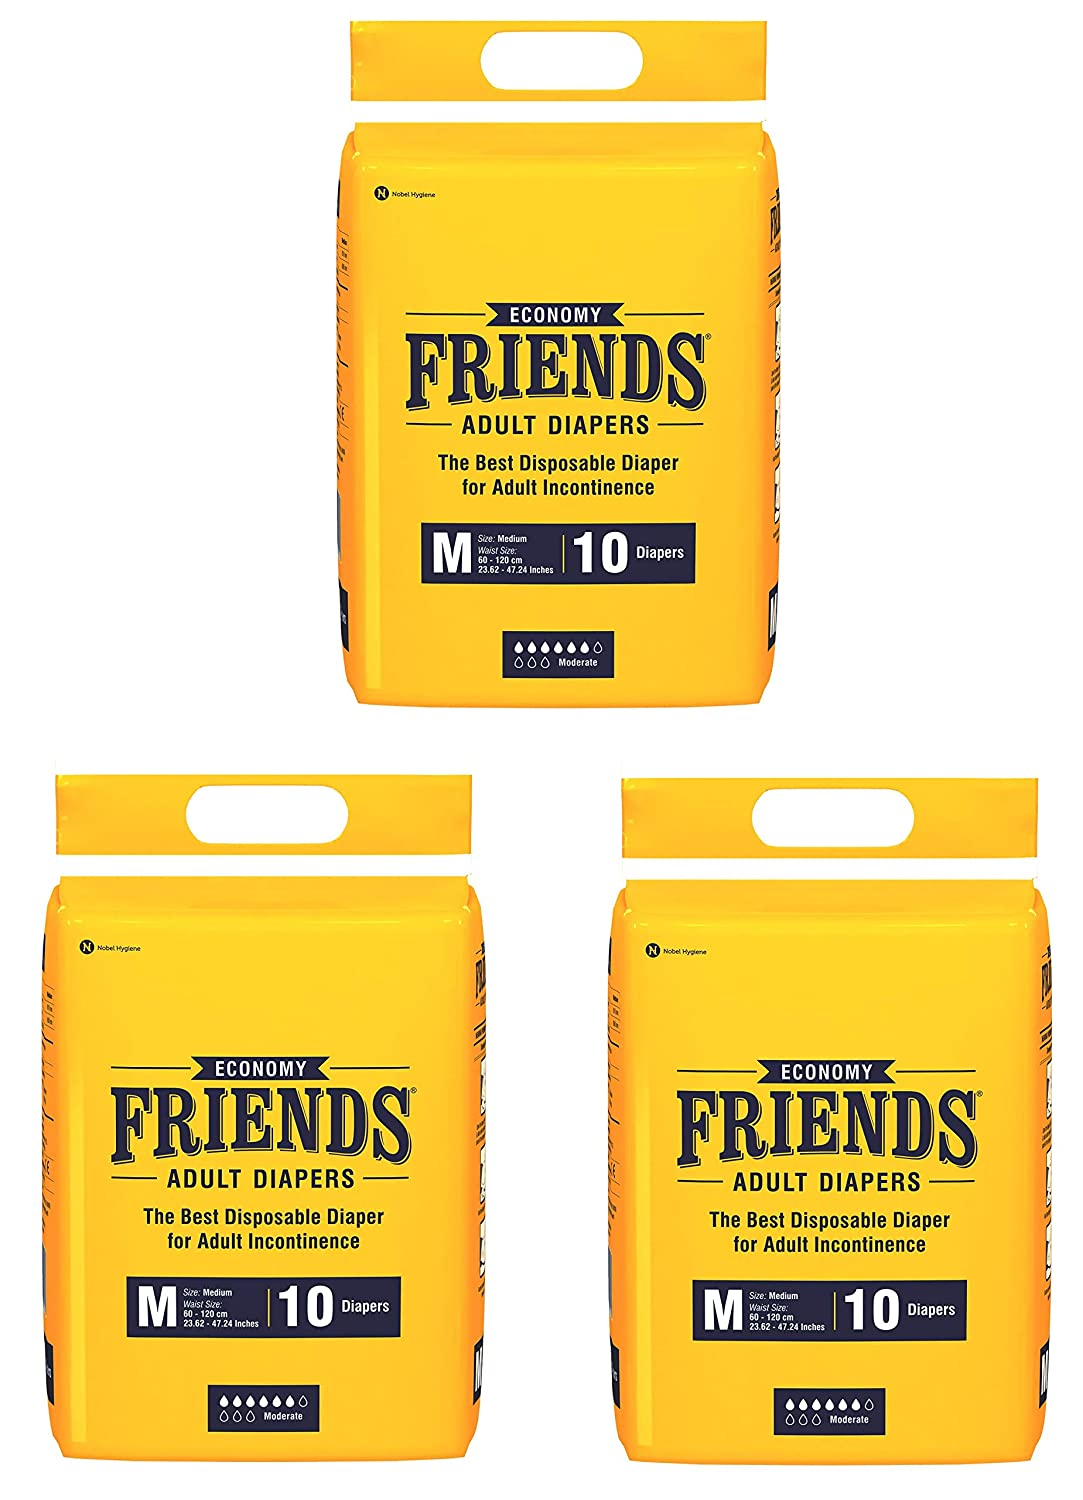 Friends Economy Adult Diapers Tape Style – M